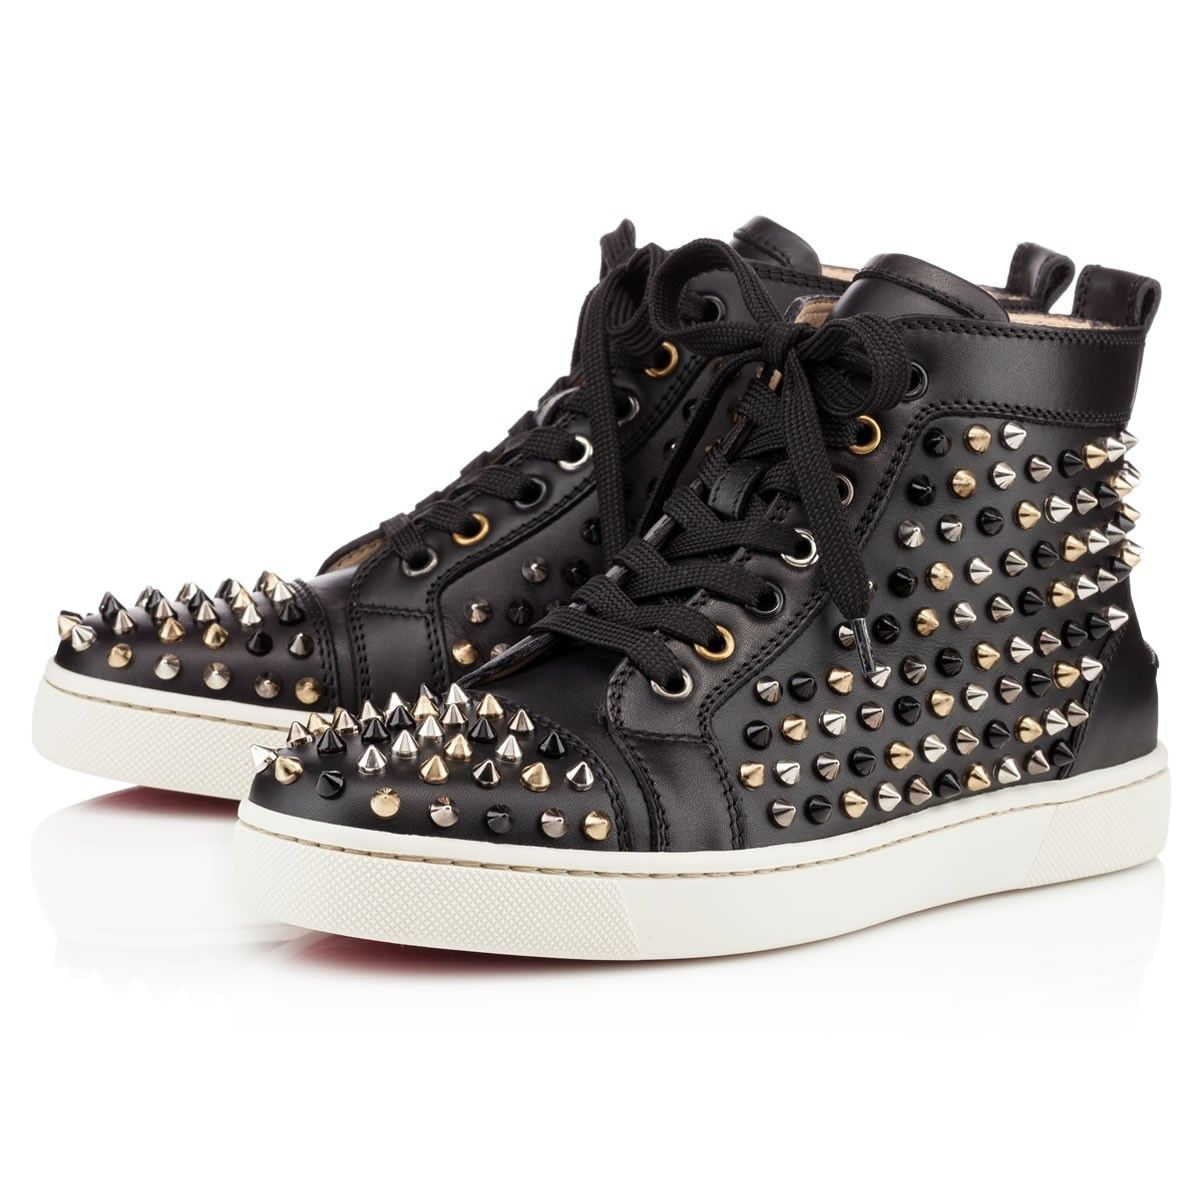 Los Angeles d4ce0 5df36 Louboutin femme spikes | louboutin femme | Studded sneakers ...